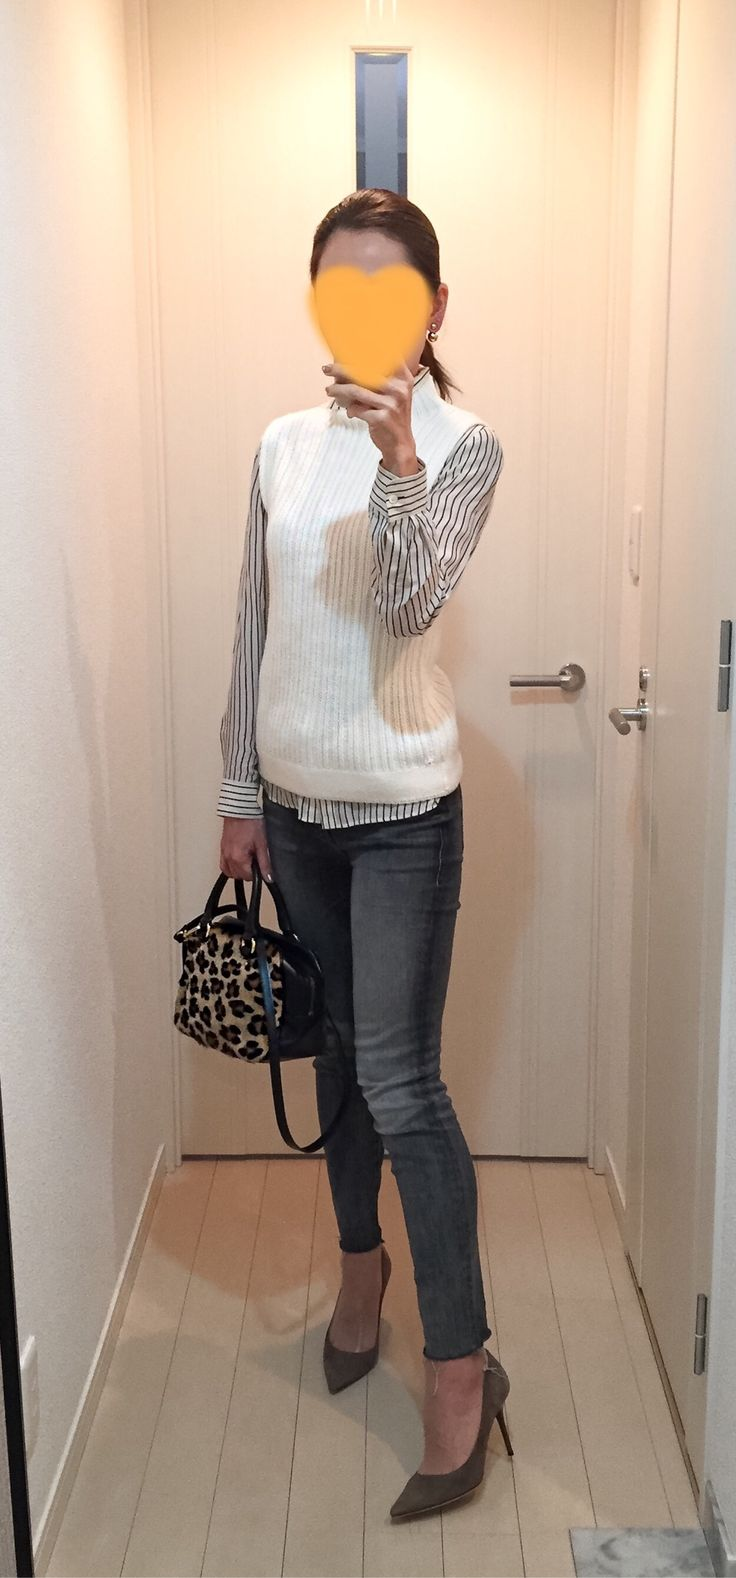 Striped shirt: Tomorrowland, White vest: GALLARDAGALANTE, Grey skinnies: Mother, Leopard bag: Tomorrowland, Beige pumps: Jimmy Choo